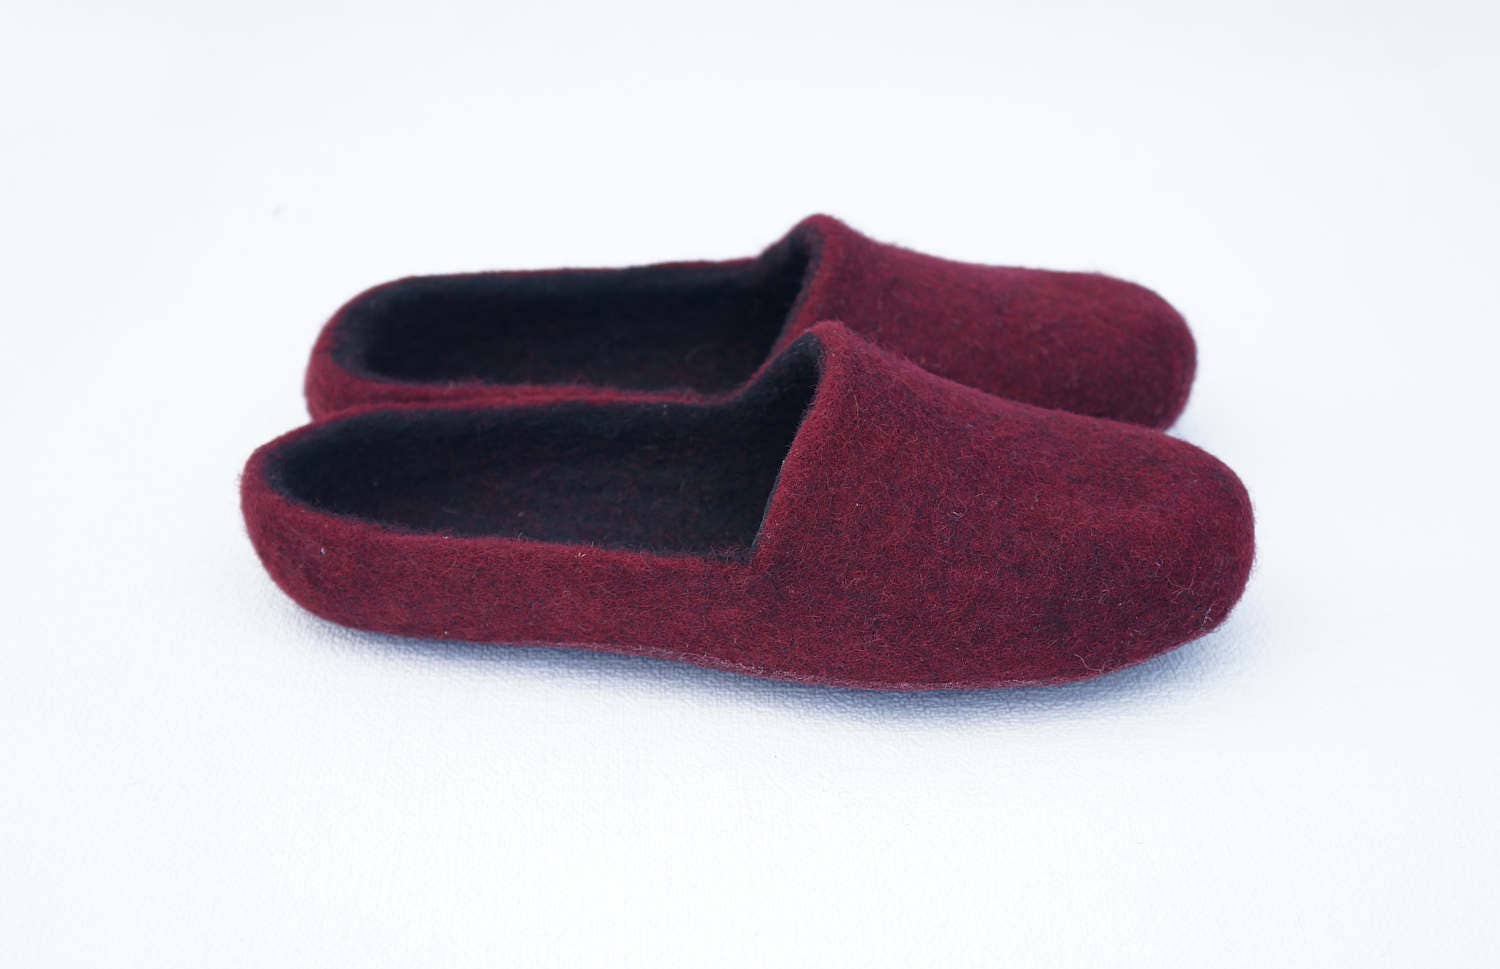 b823ad1e568aa Basic felted clogs 28 colors Organic felted slippers Women wool clogs Women  slippers Brown orange slippers Slippers Women gifts